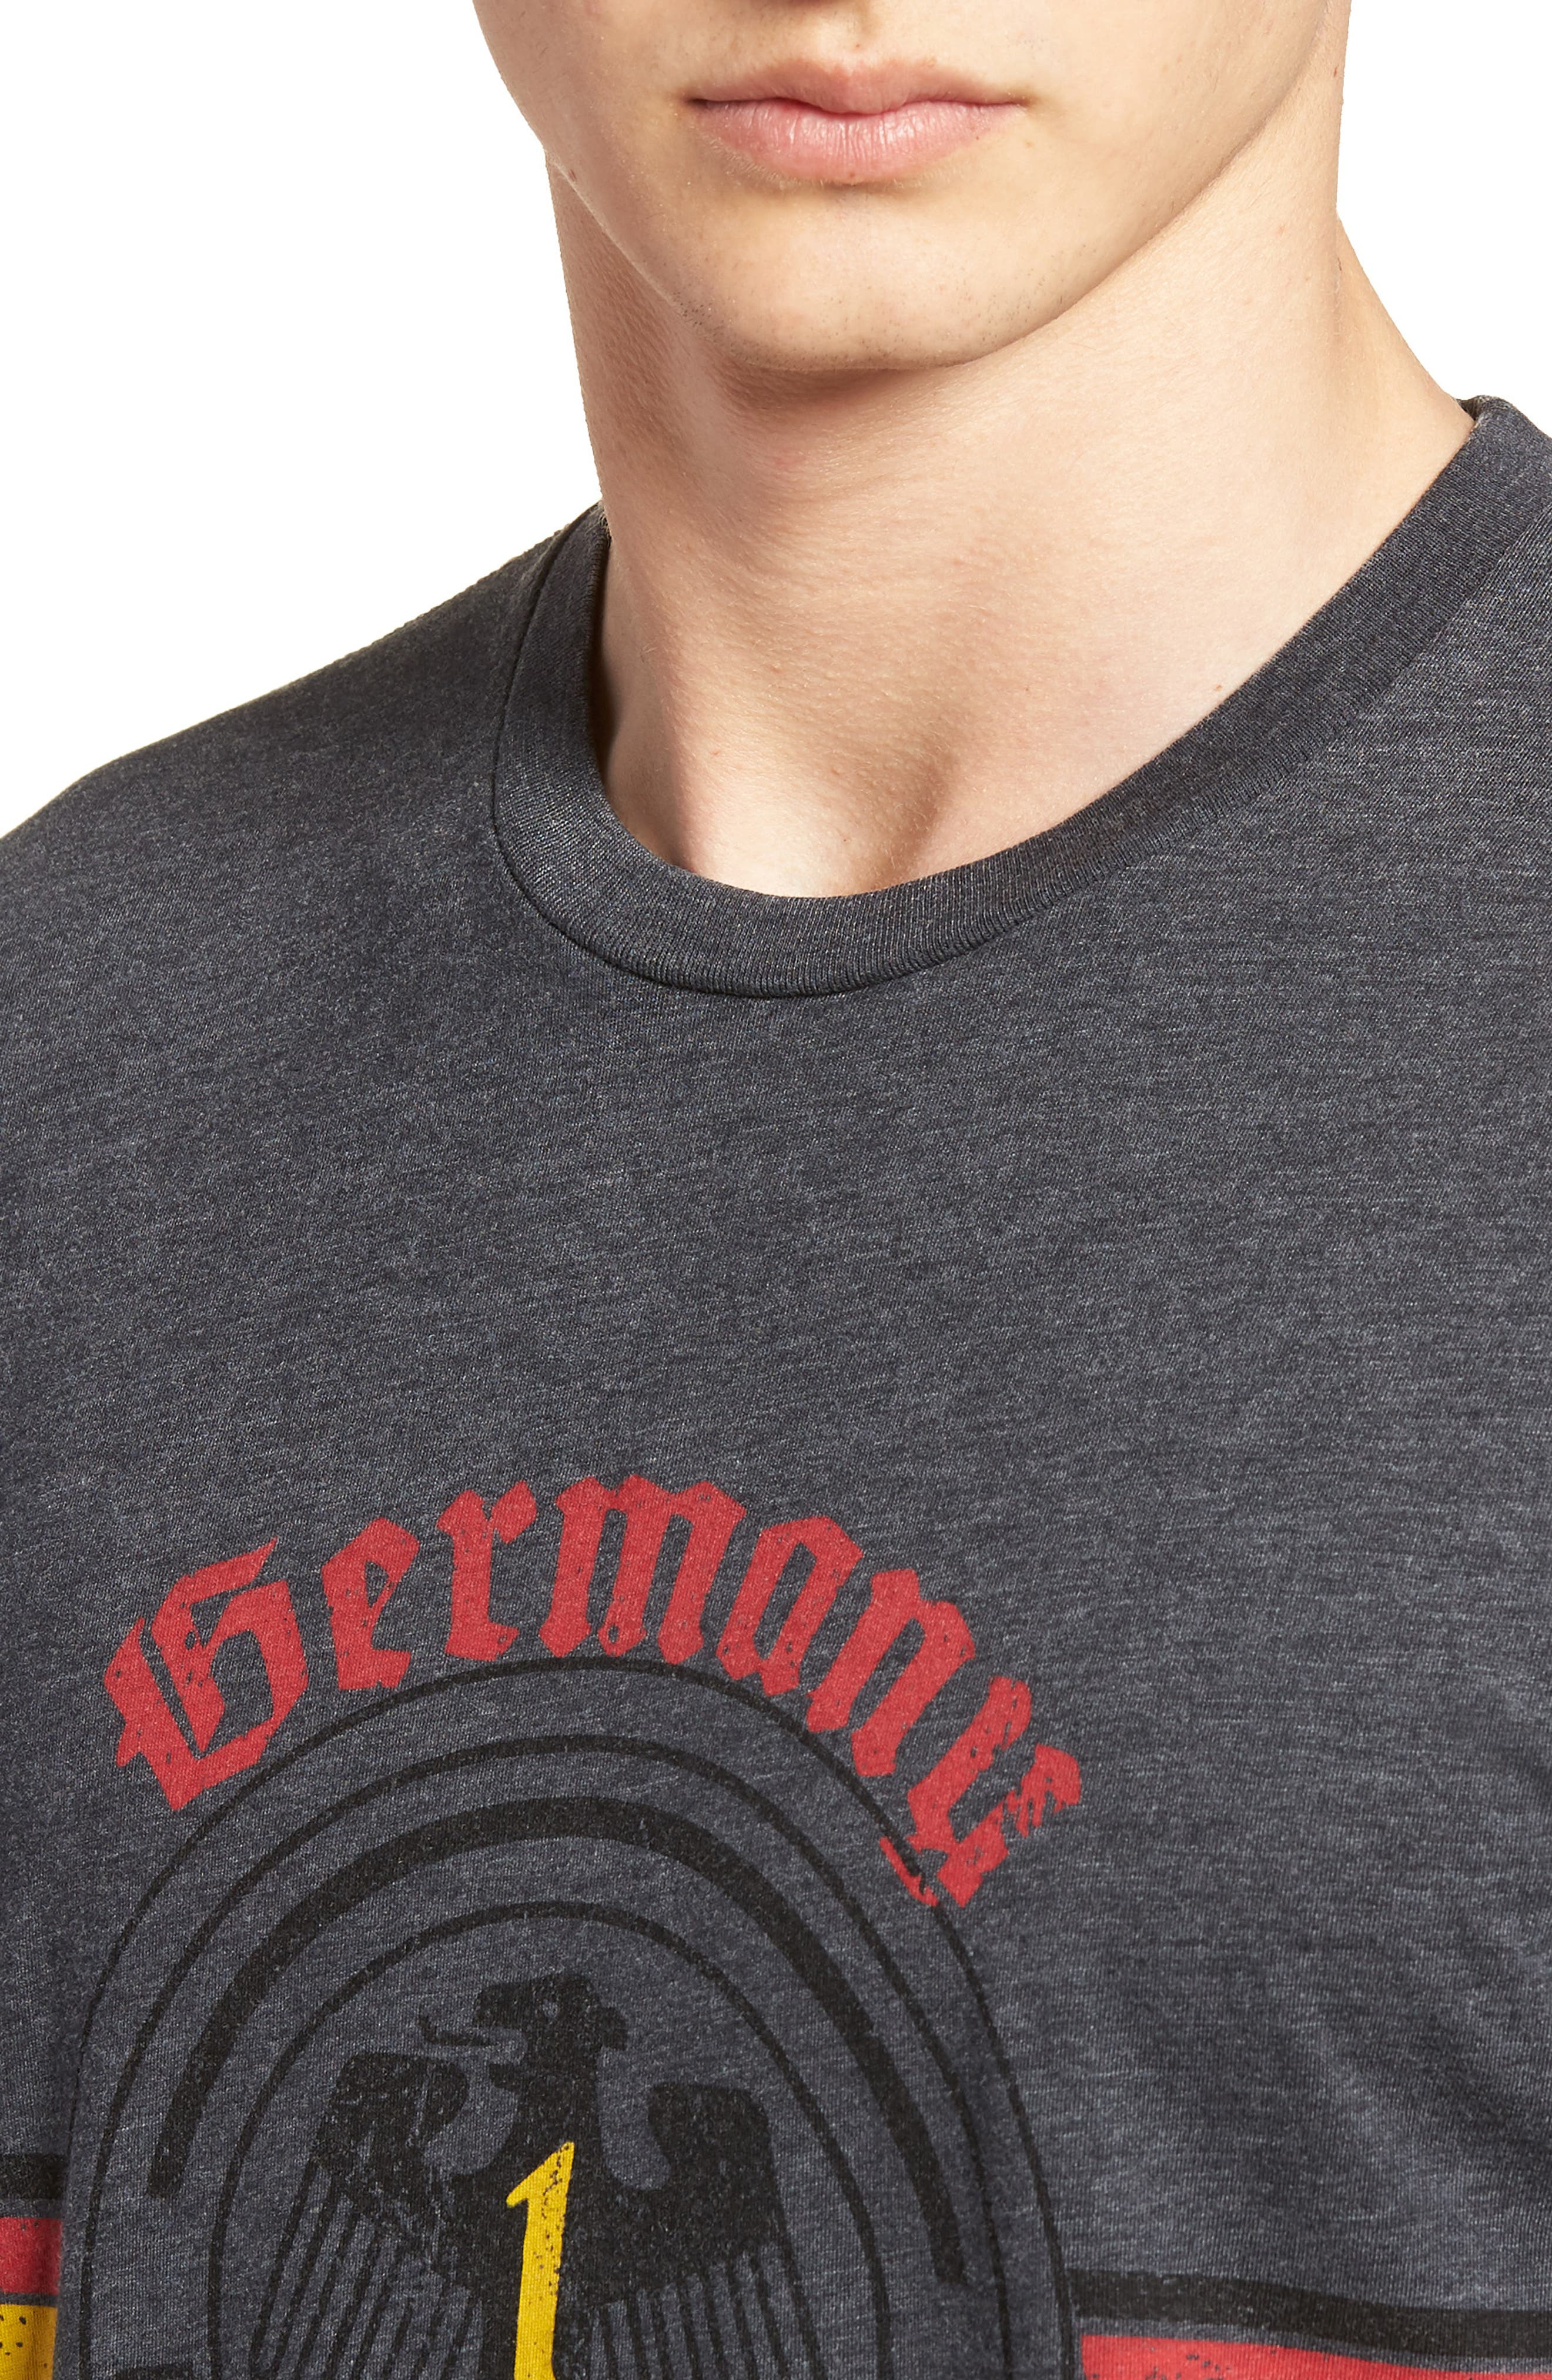 Germany Jersey T-Shirt,                             Alternate thumbnail 4, color,                             Charcoal